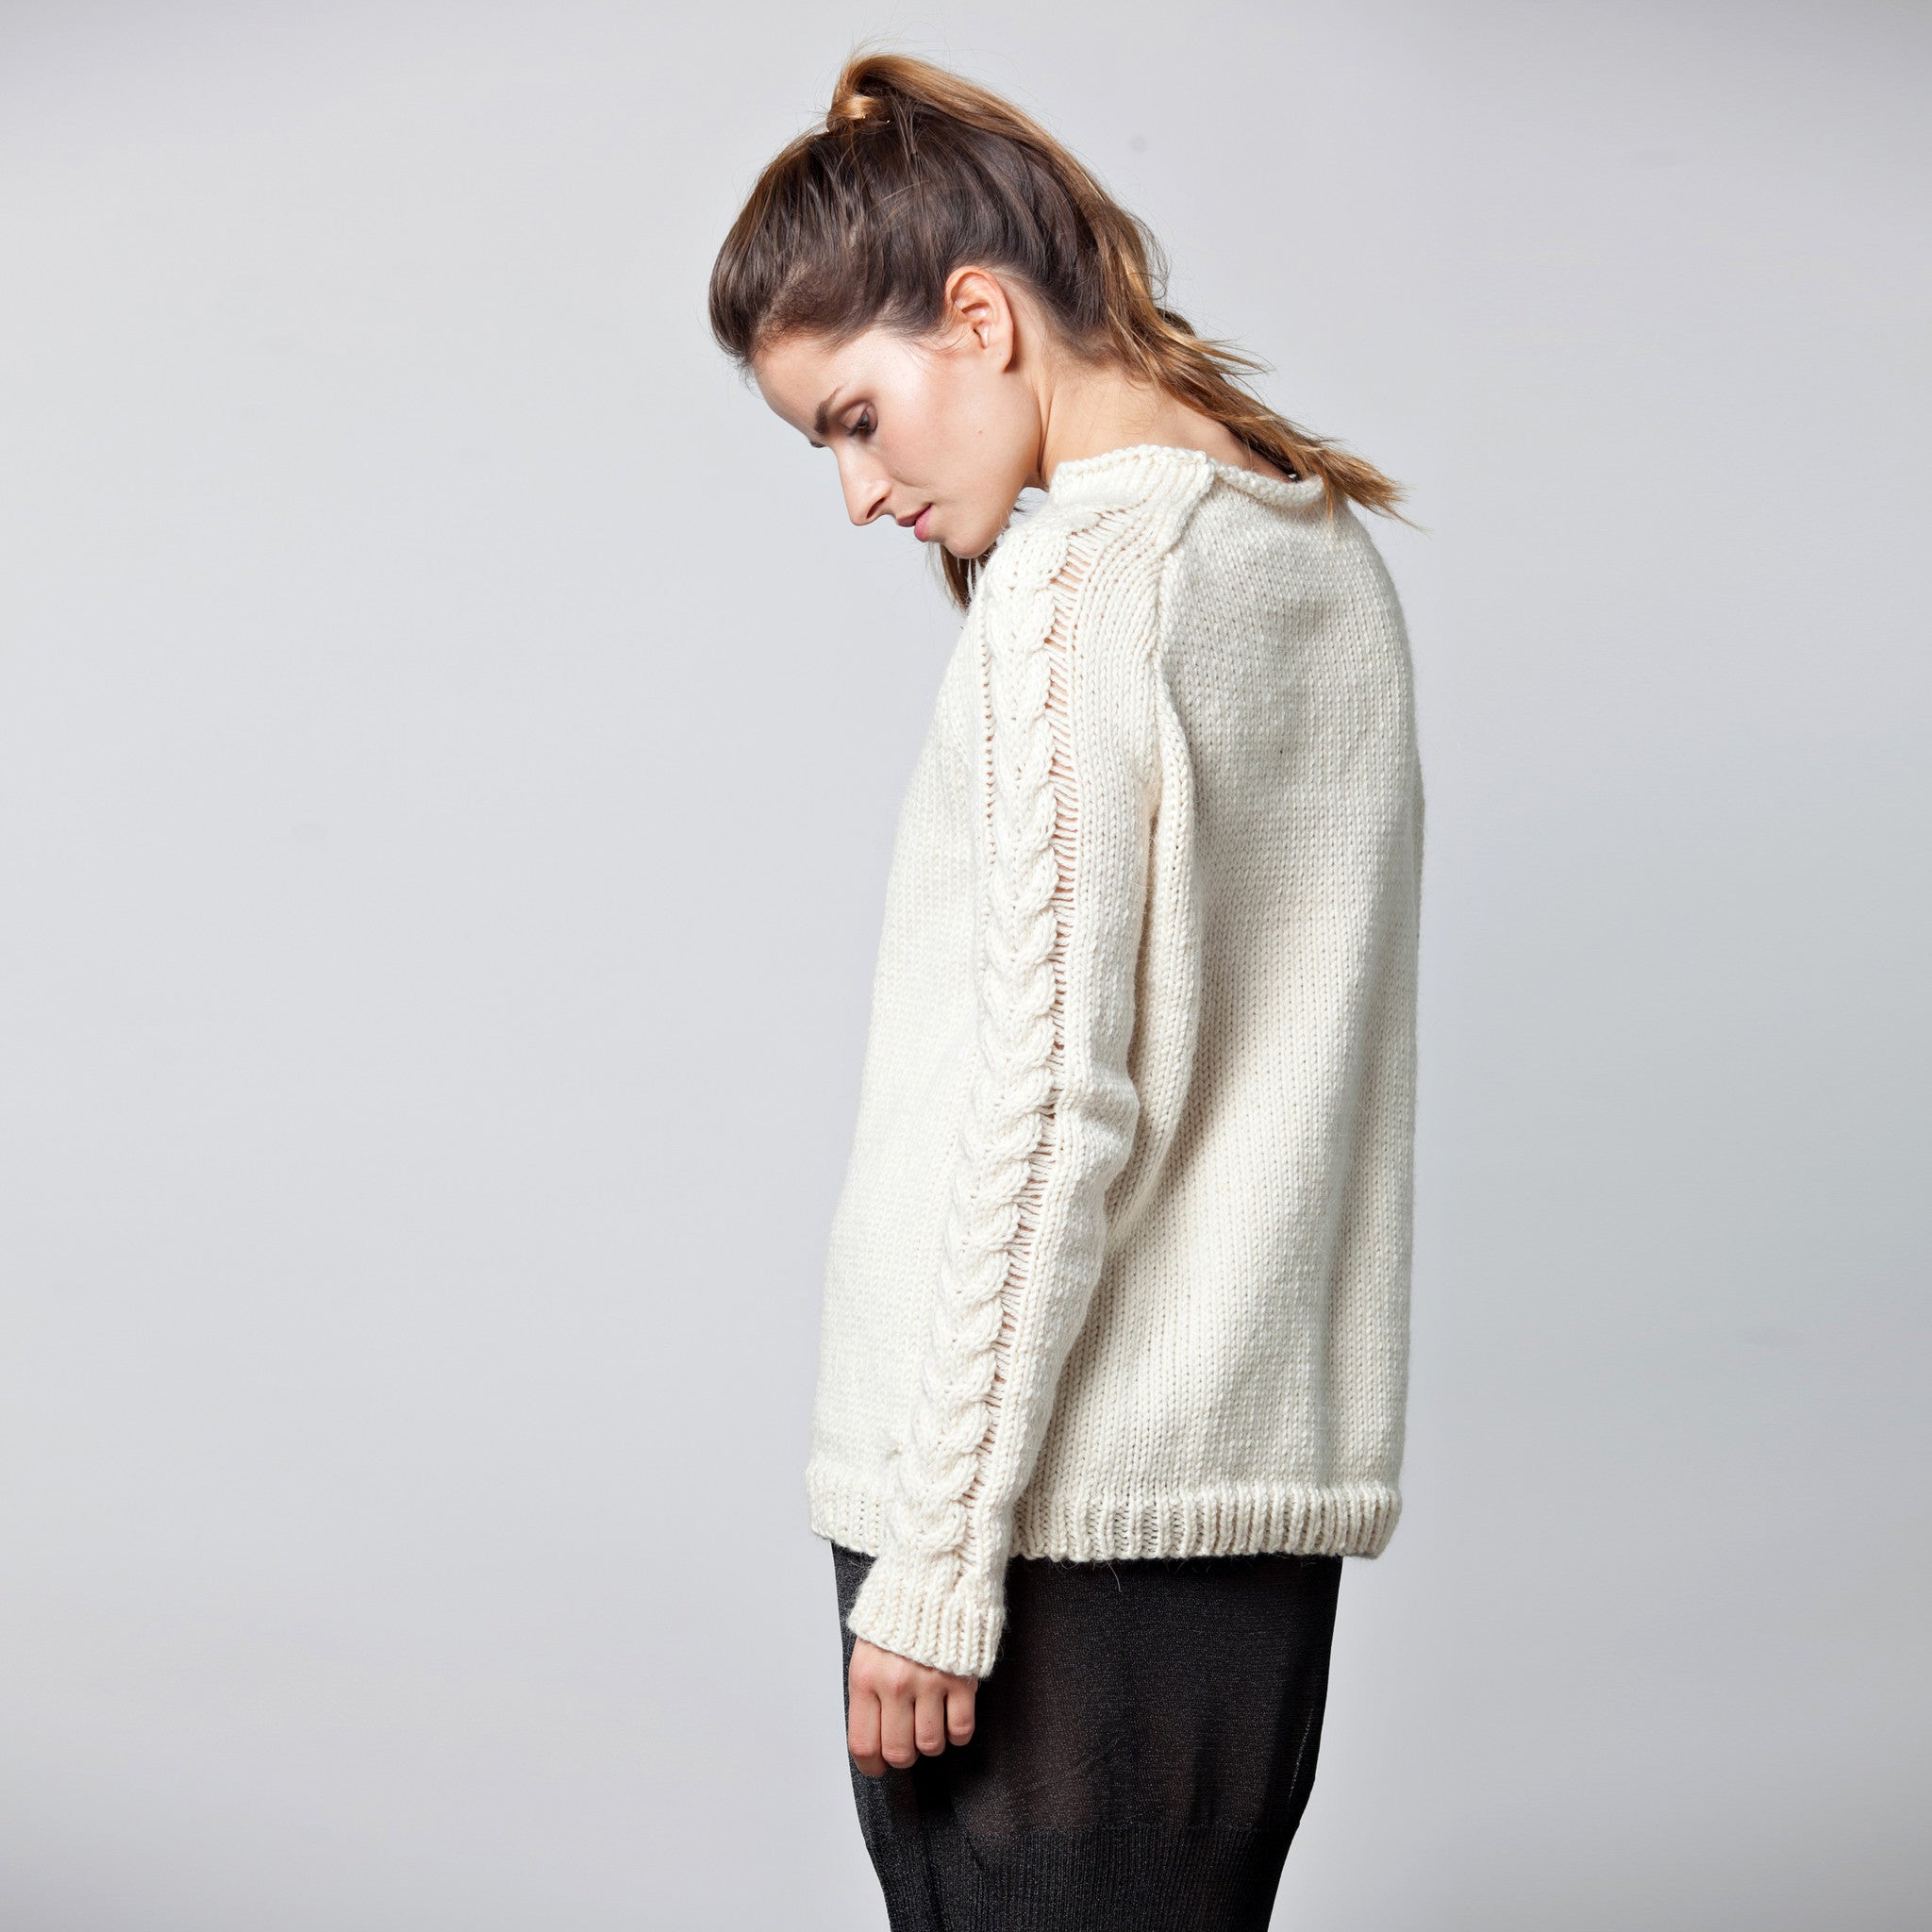 Raglan alpaca sweater - DuendeFashion  - 2